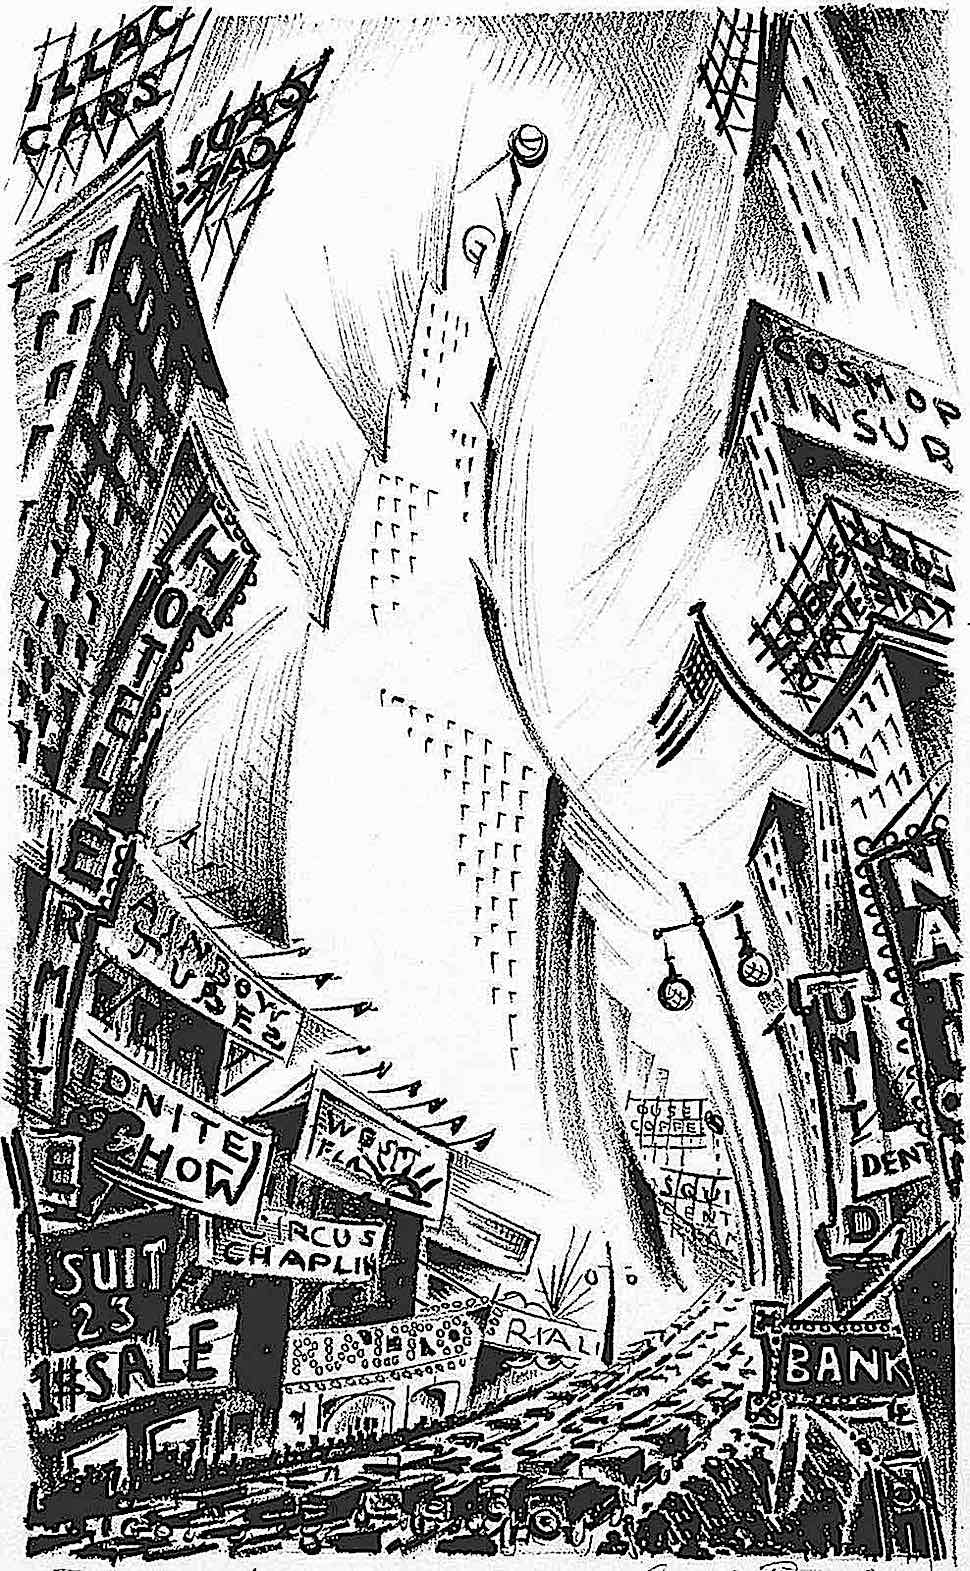 Arnold Ronnebeck art, a big city in motion